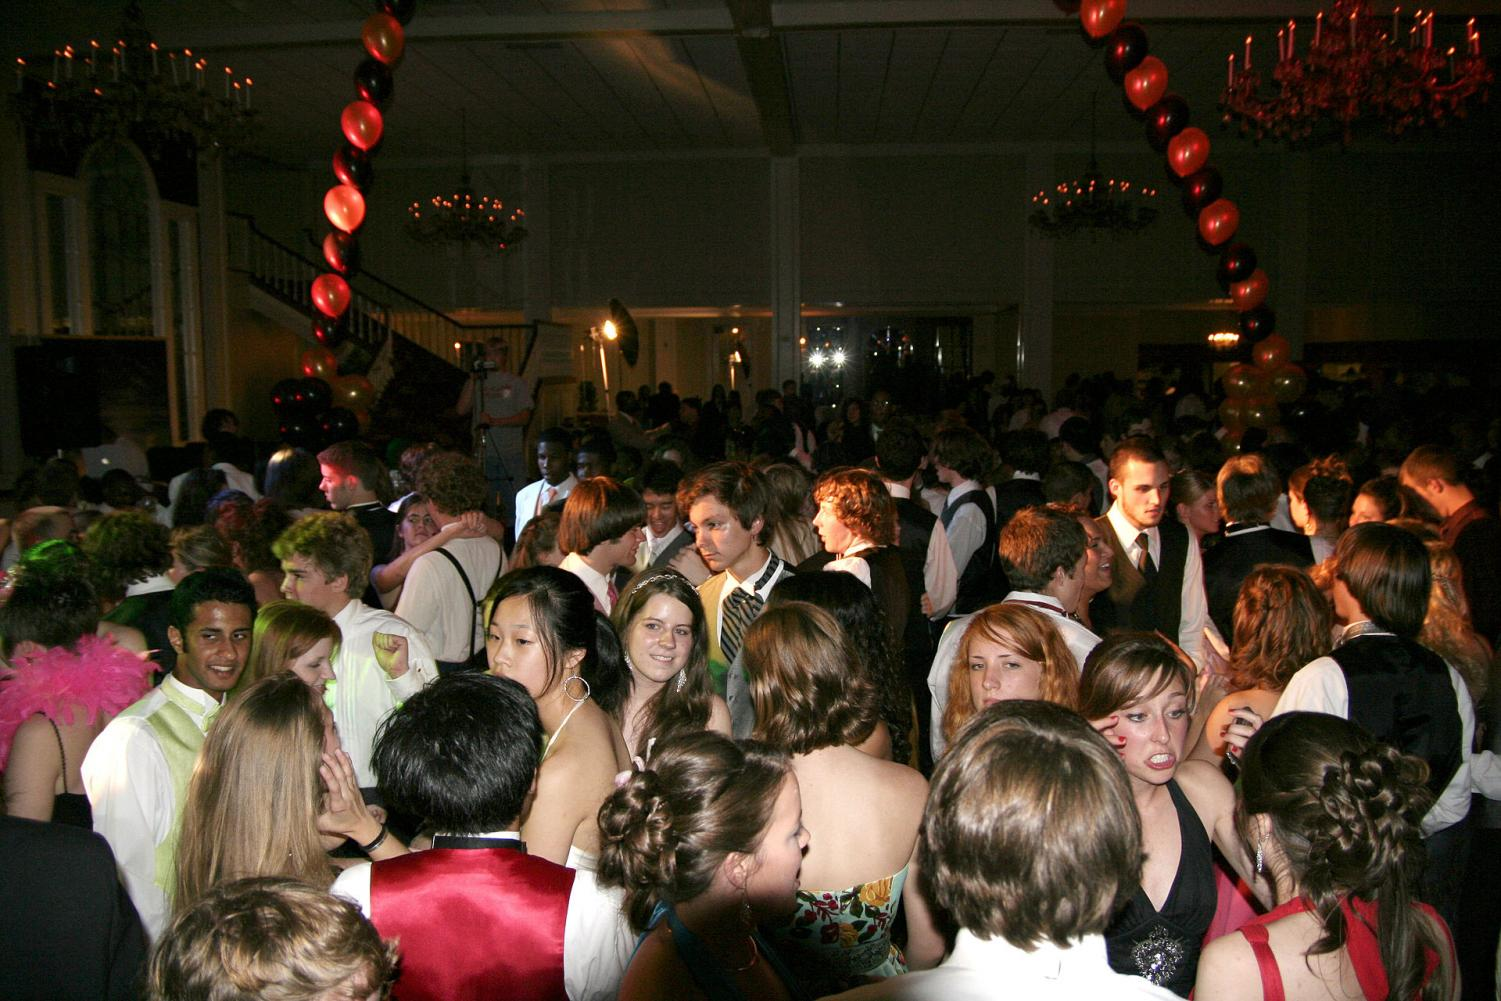 The vibrancy of prom overshadows the innate gender stereotypes that exist in this event.